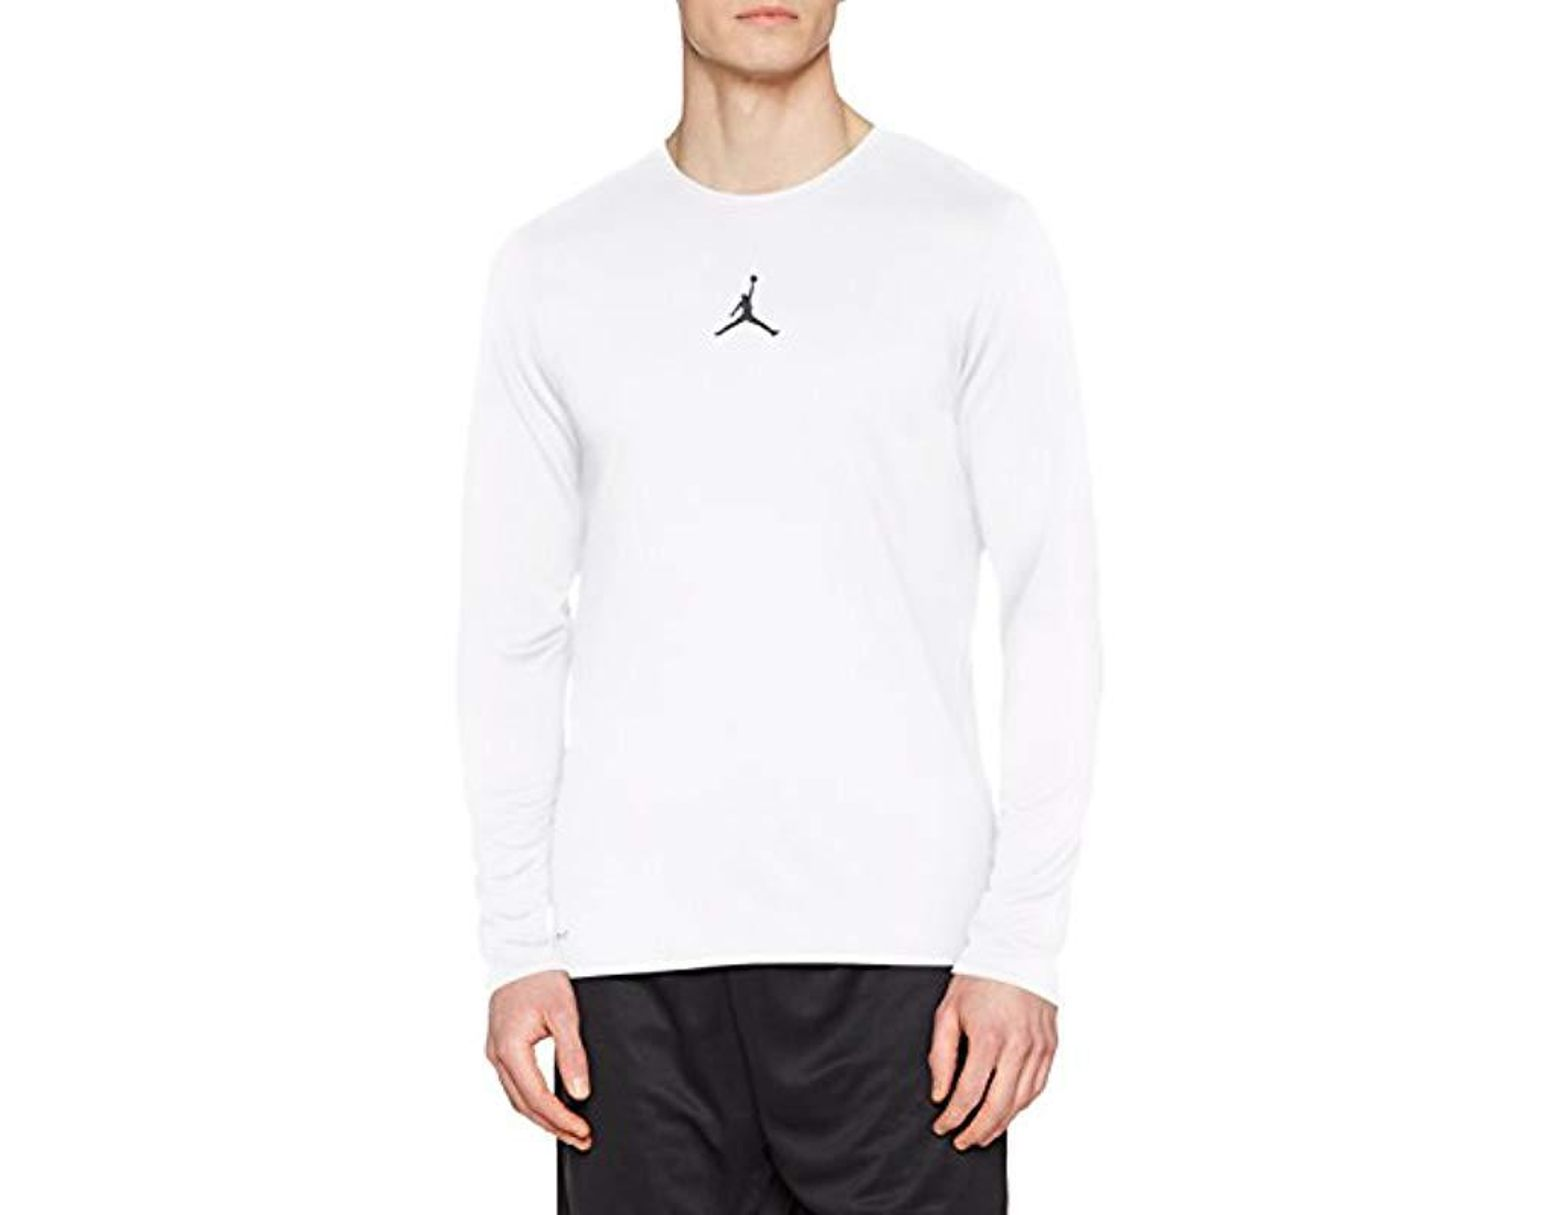 ef0b971863dbc Nike Ult Flight Performance Top Long Sleeve in White for Men - Lyst